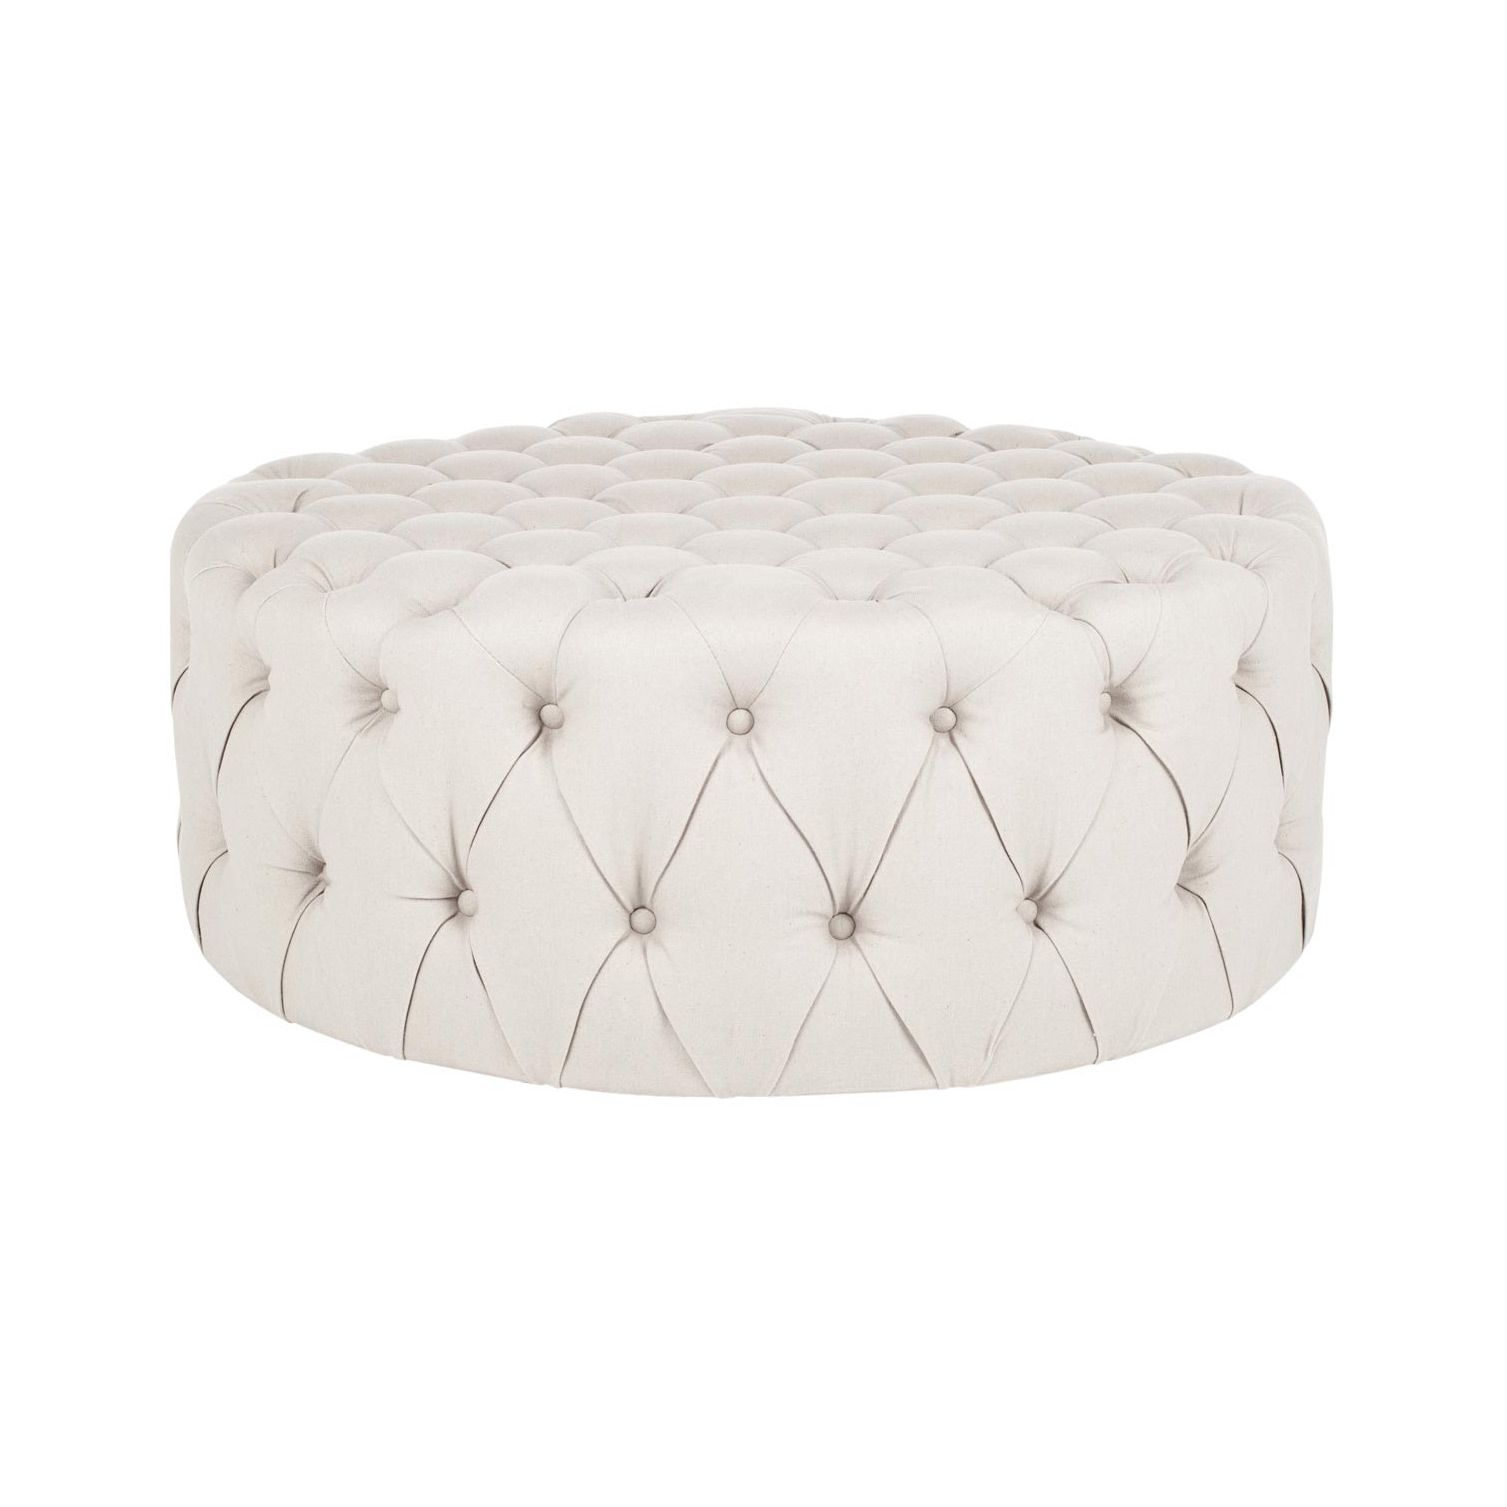 This luxurious ottoman is made from a stunning cream linen fabric ...